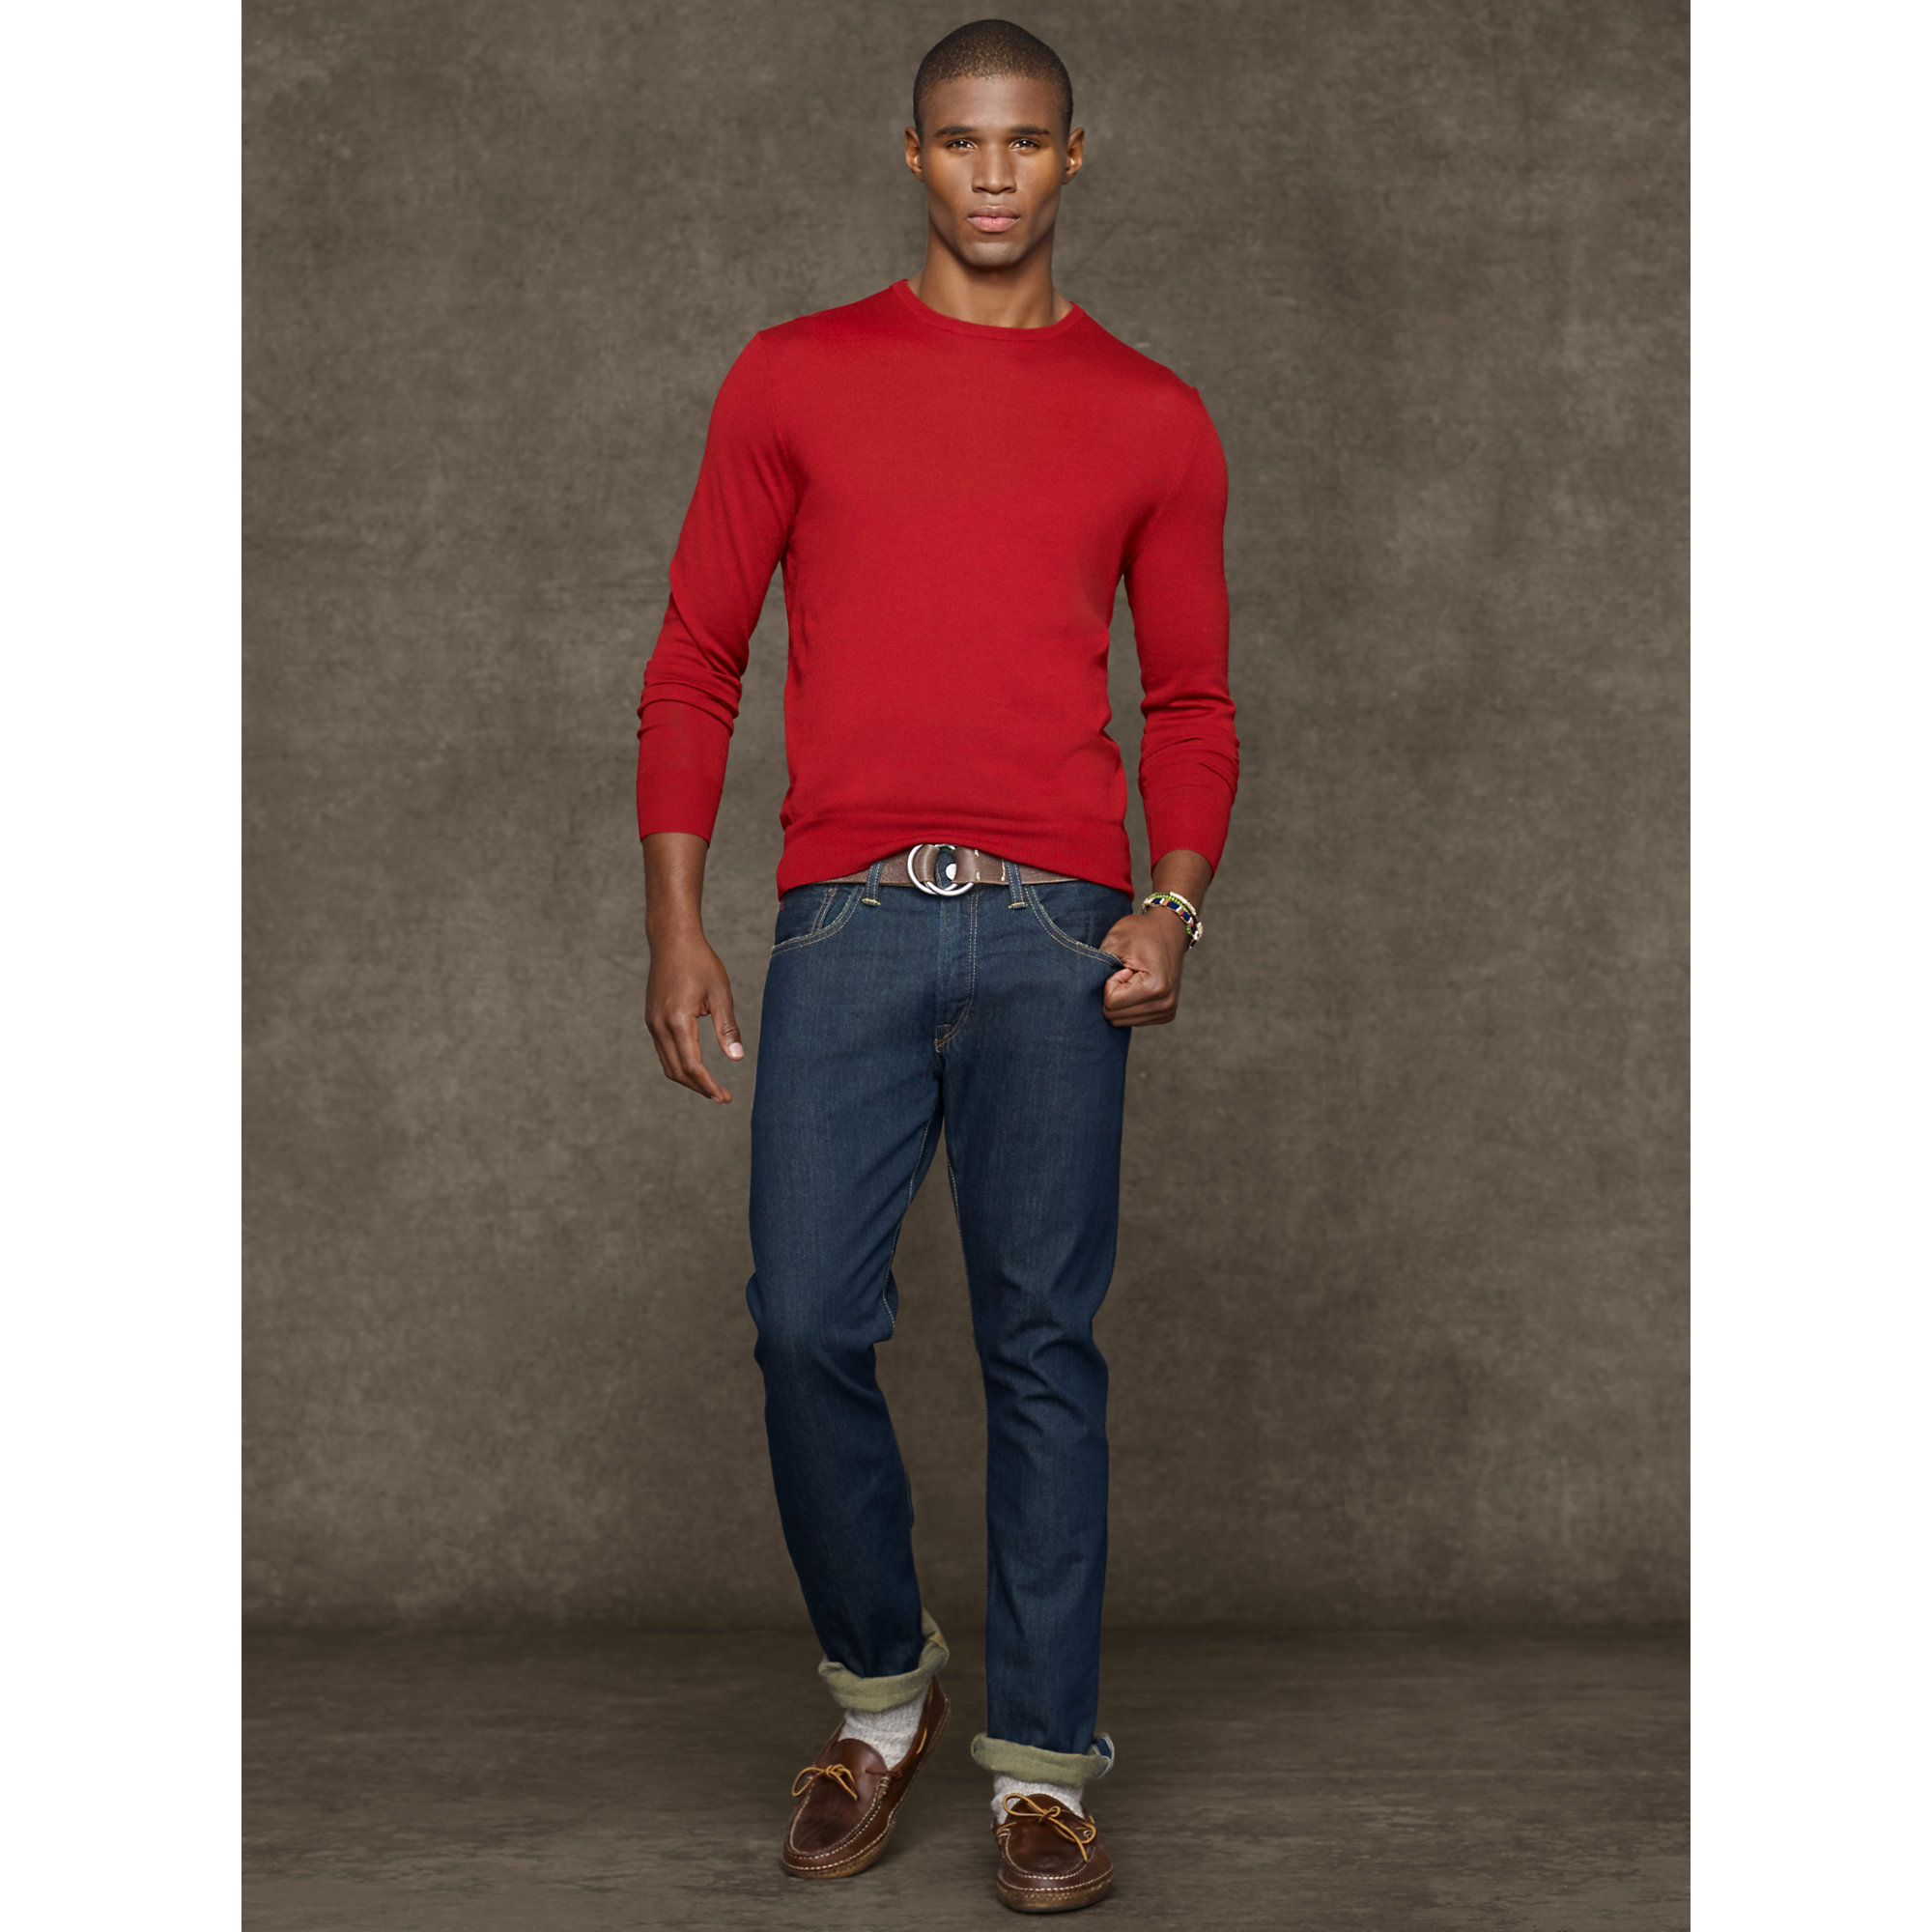 d4f5ad1ff Polo Ralph Lauren Merino Wool Crewneck Sweater in Red for Men - Lyst